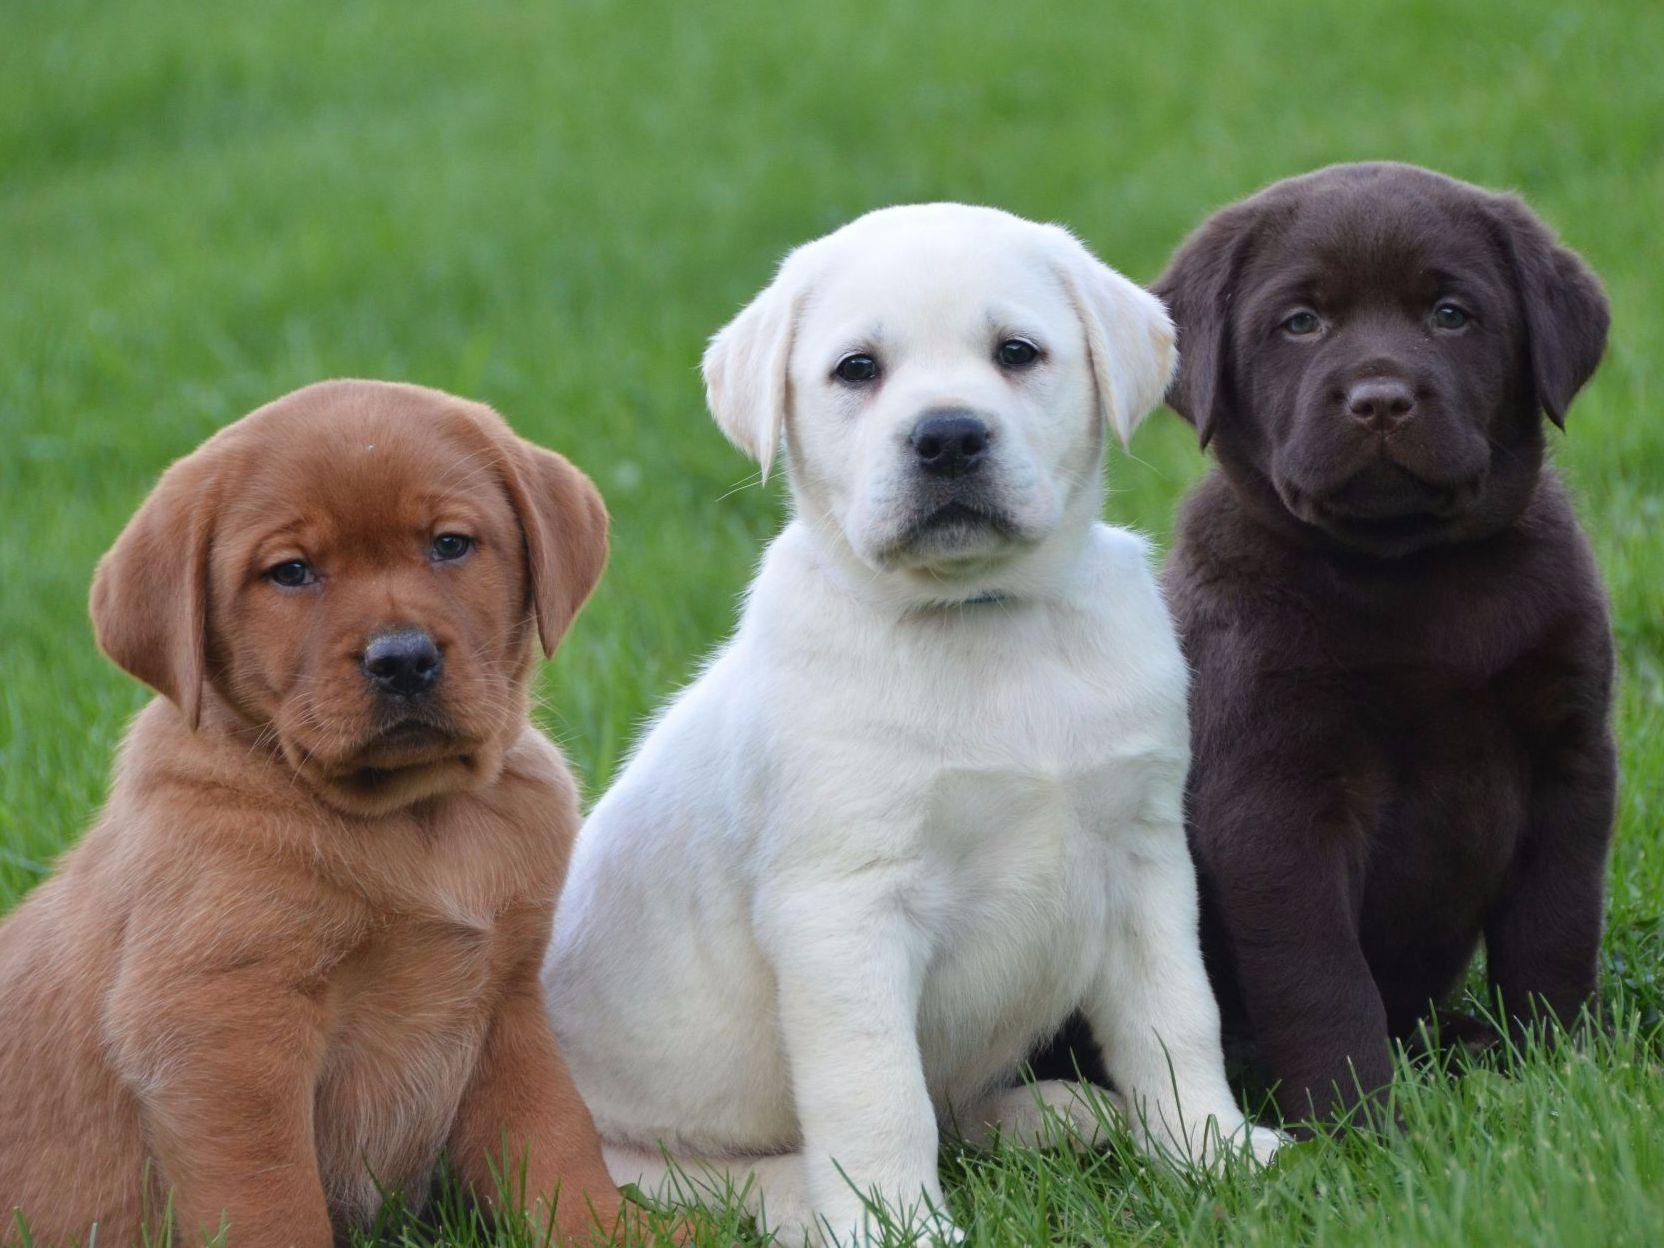 Labrador Puppy For Sale ADOPTION In New South Wales Australia